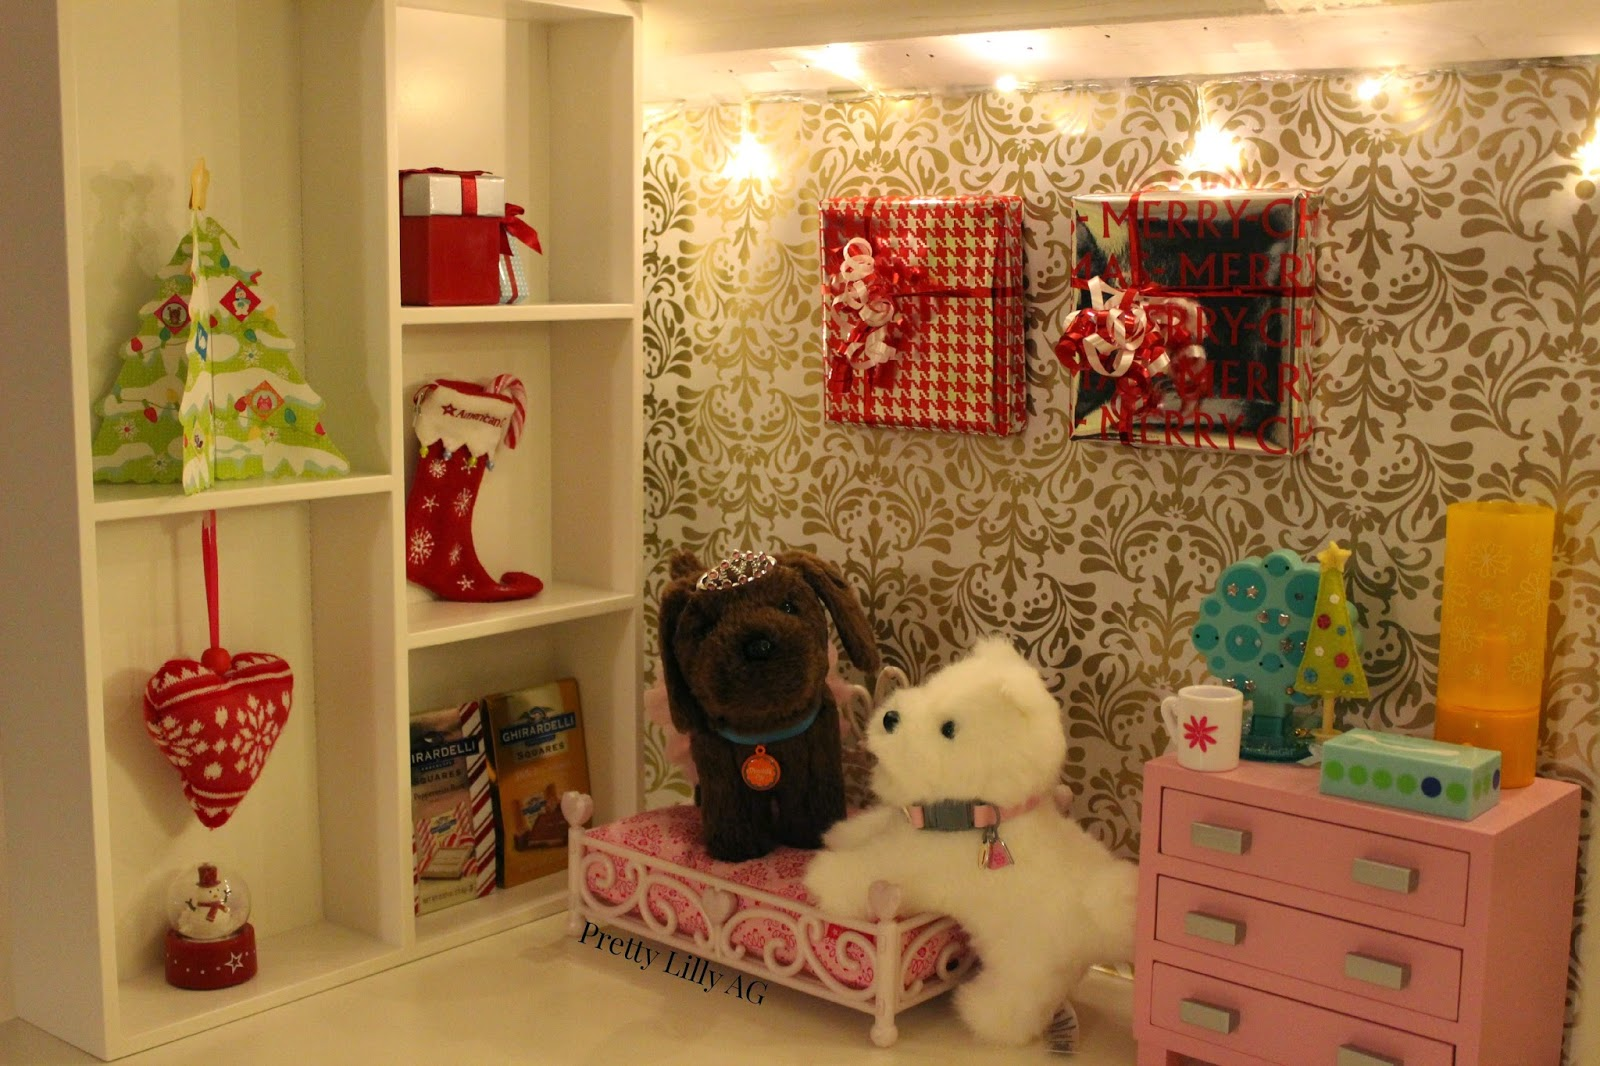 Pretty lilly an american girl christmas doll bedroom for American decoration ideas